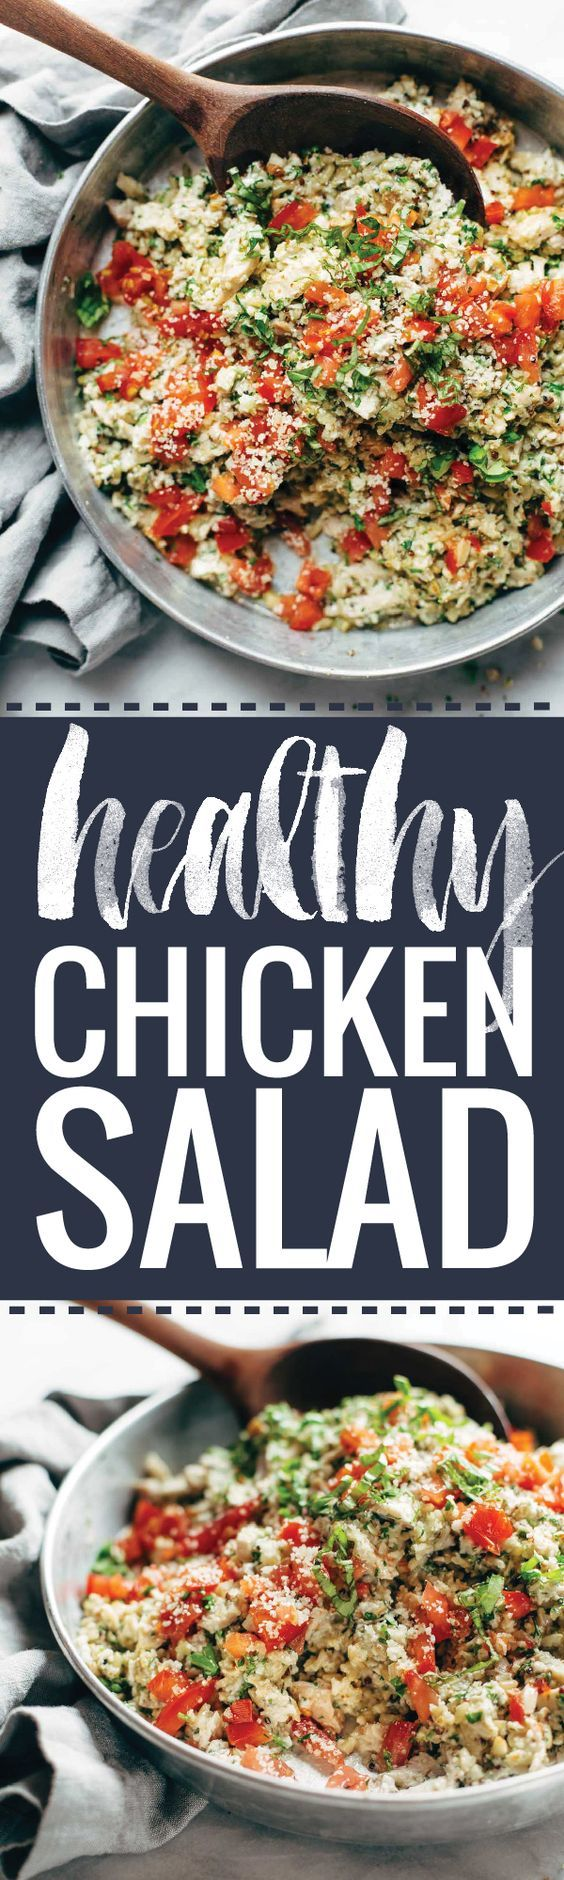 Garlic Herb Chicken Salad - this healthy chicken salad is CREAMY and CLEAN with no mayo! like a cross between herby bruschetta and chicken salad. Super easy, too! | pinchofyum.com